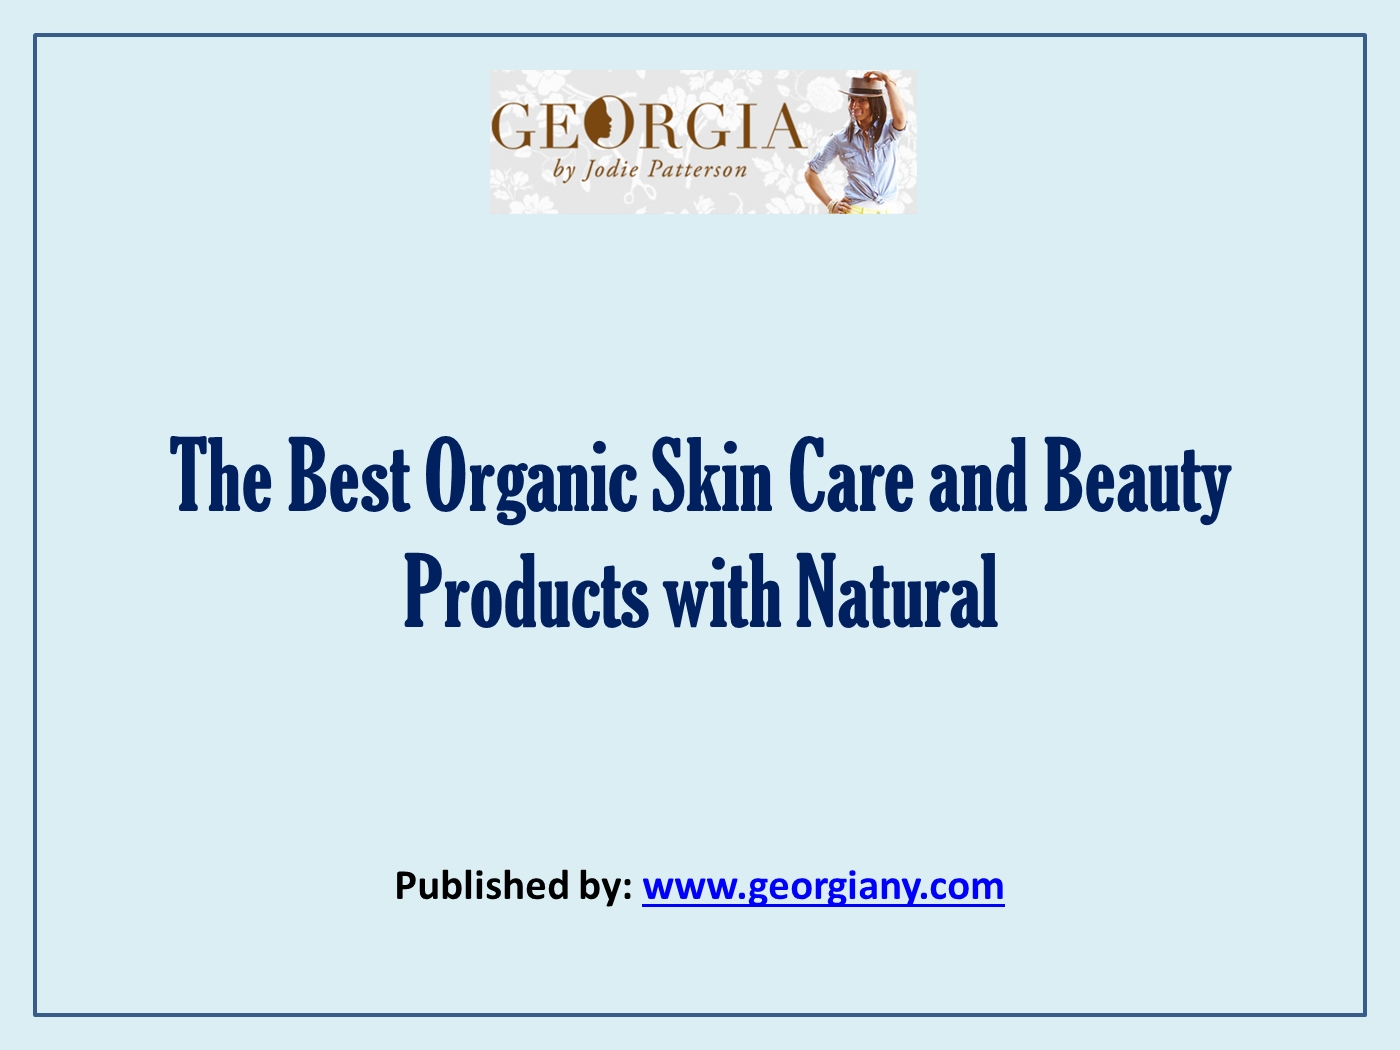 The Best Organic Skin Care and Beauty Products with Natural pptx